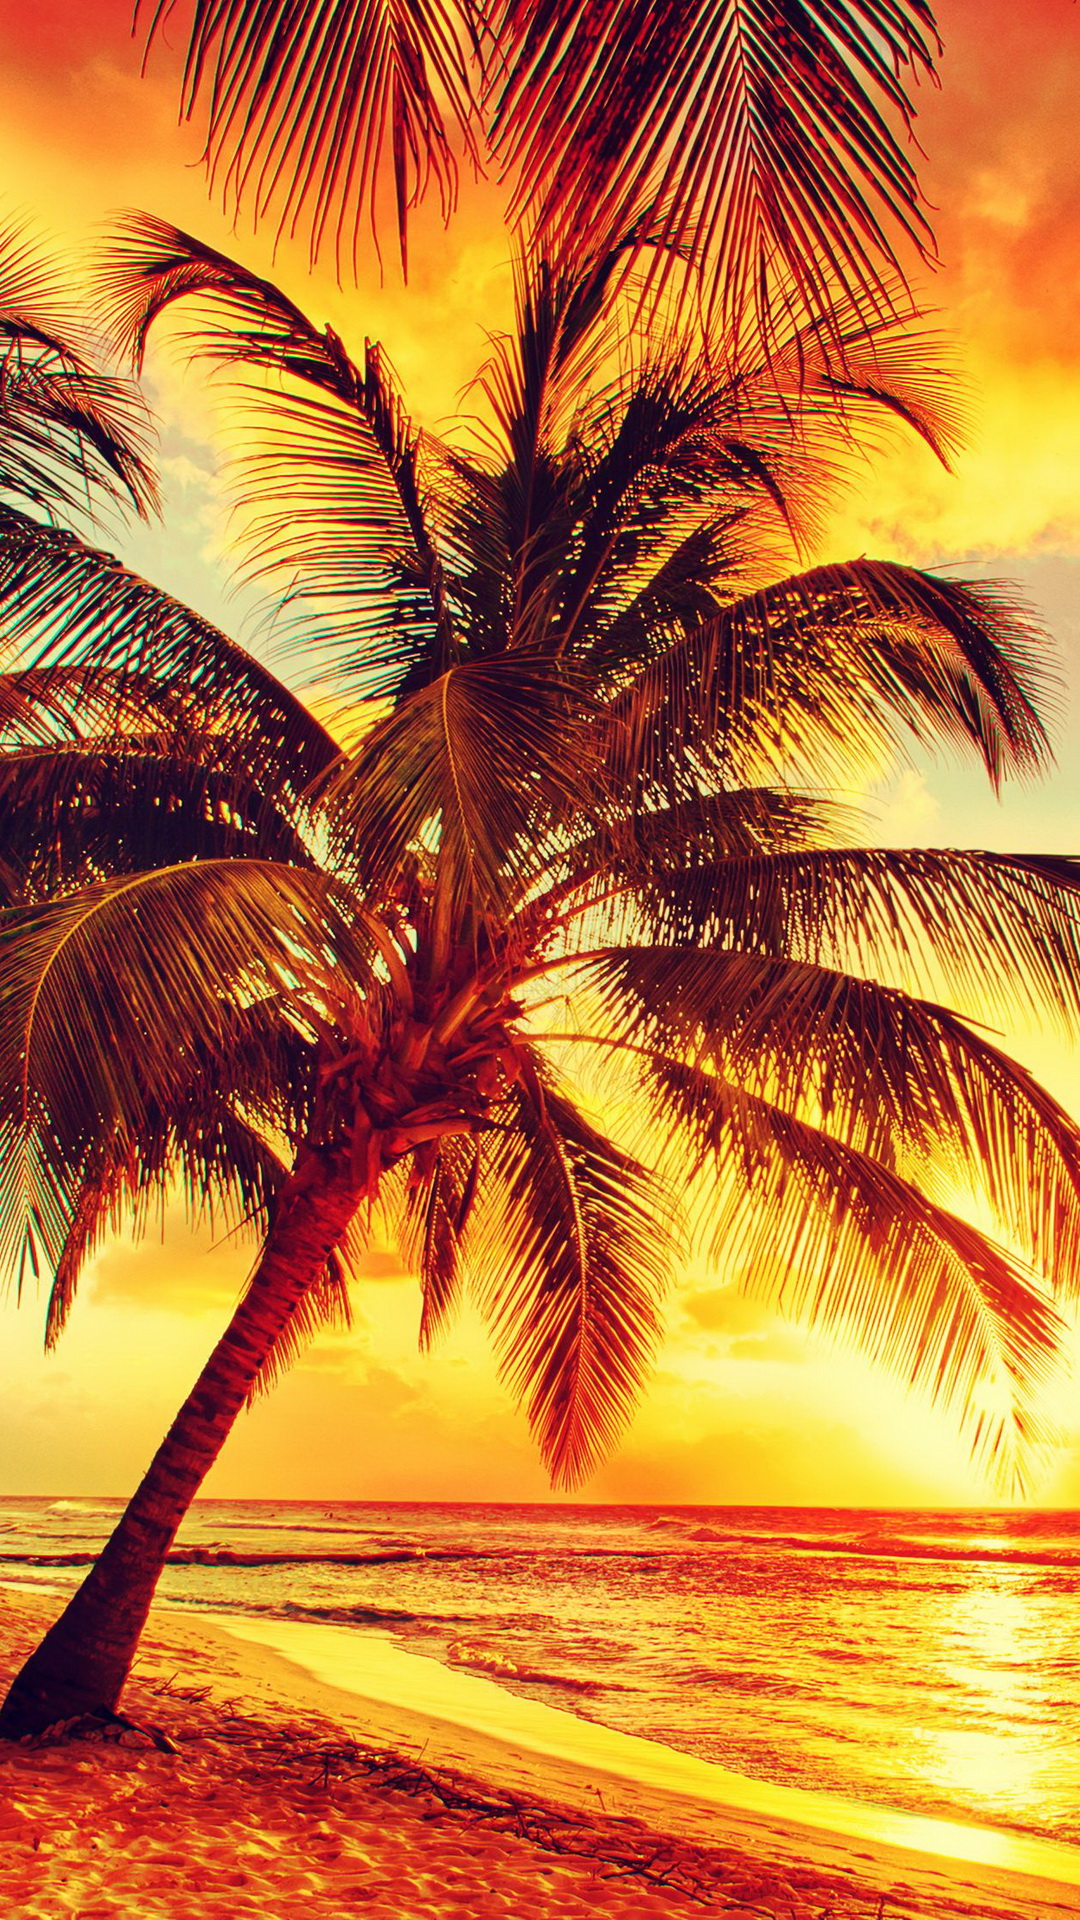 palm tree wallpapers for iphone 5